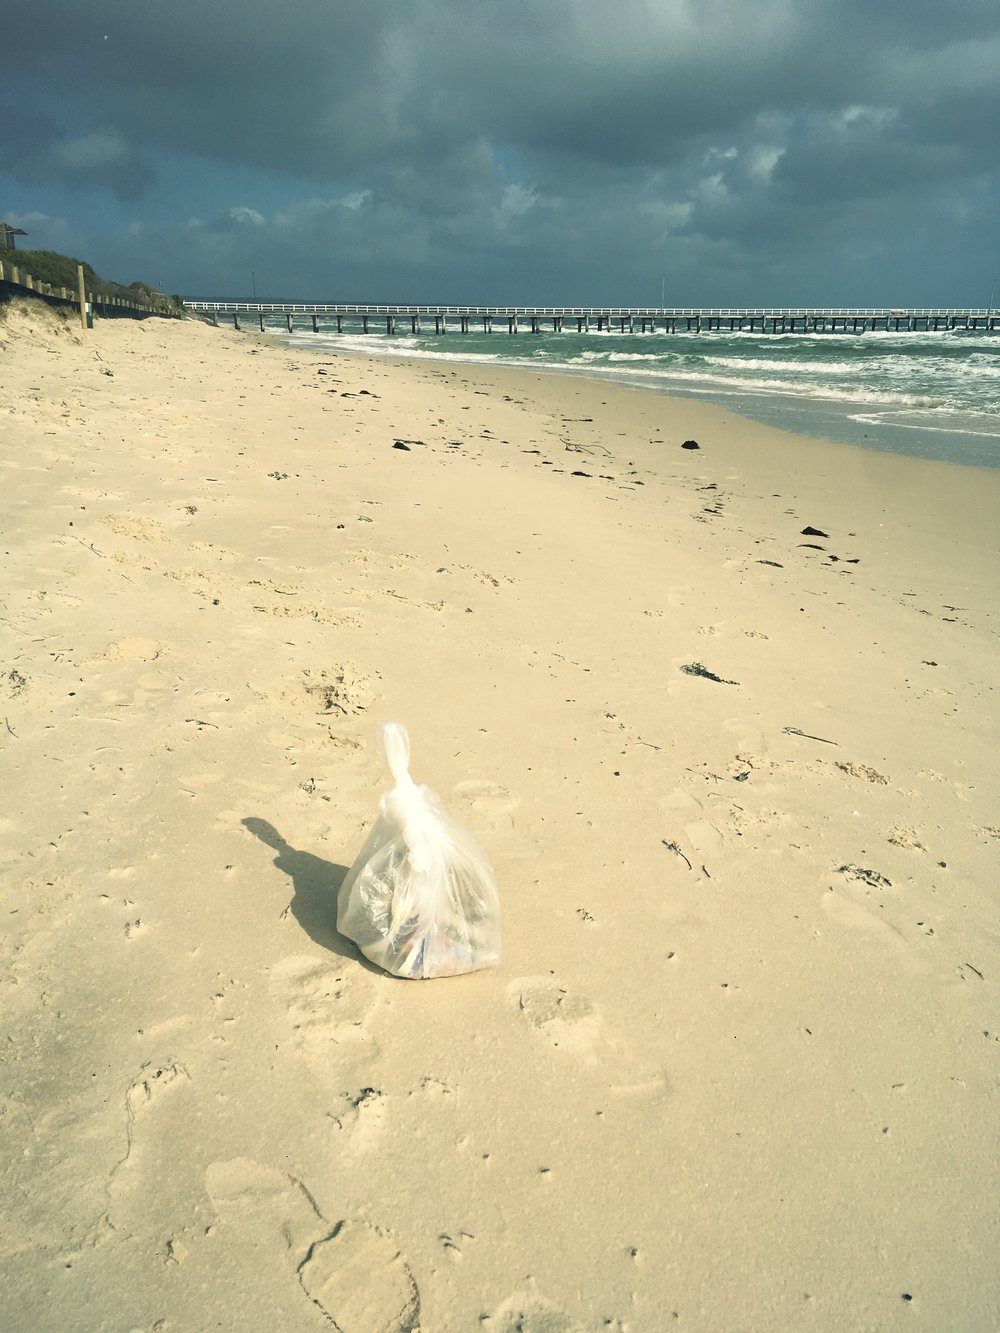 RUBBISH COLLECTED AT SEAFORD BEACH, VICTORIA, AUSTRALIA